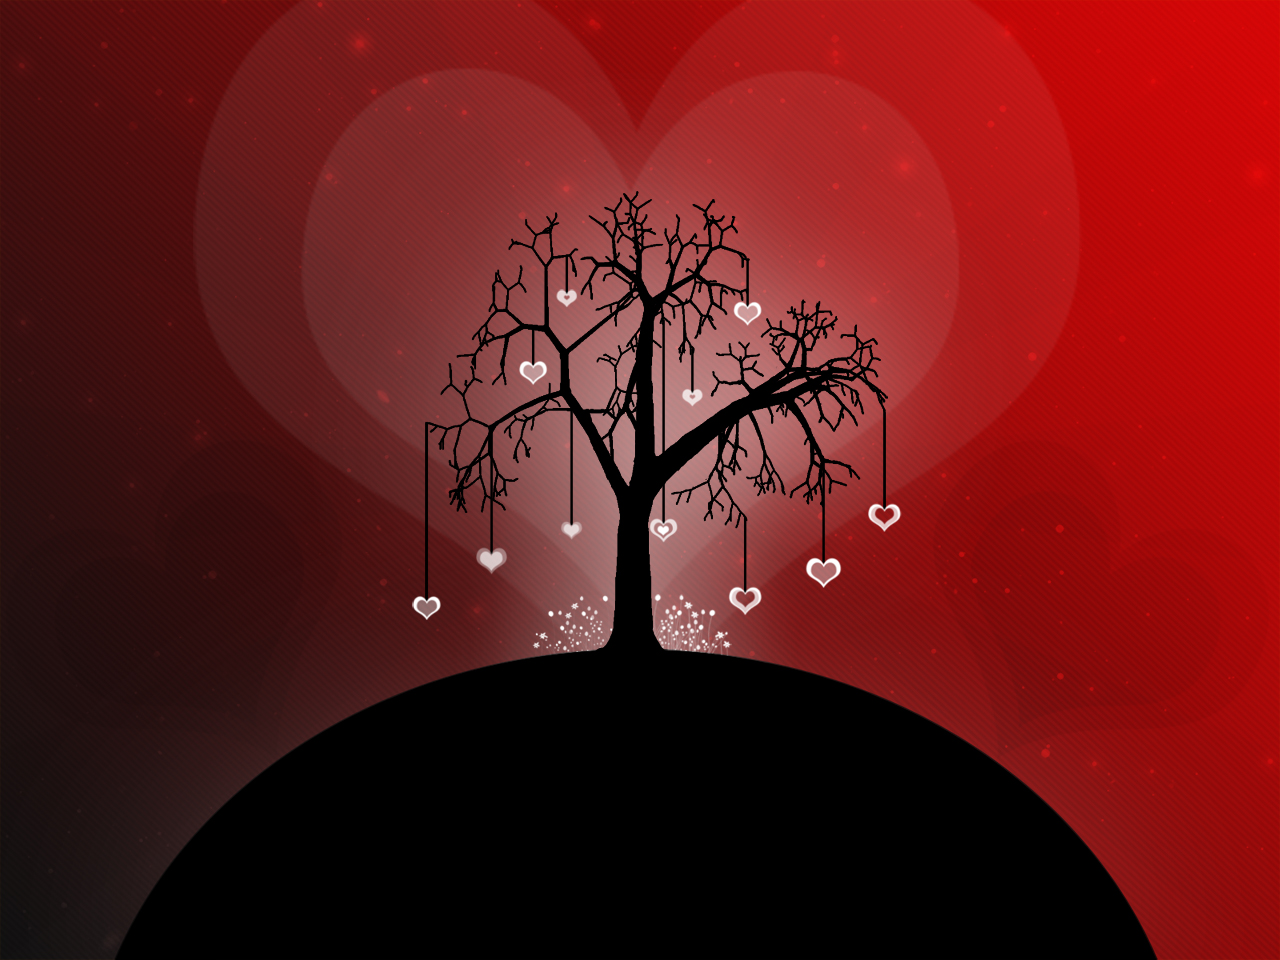 Best Love Wallpapers: HD Wallpapers ,Backgrounds ,Photos